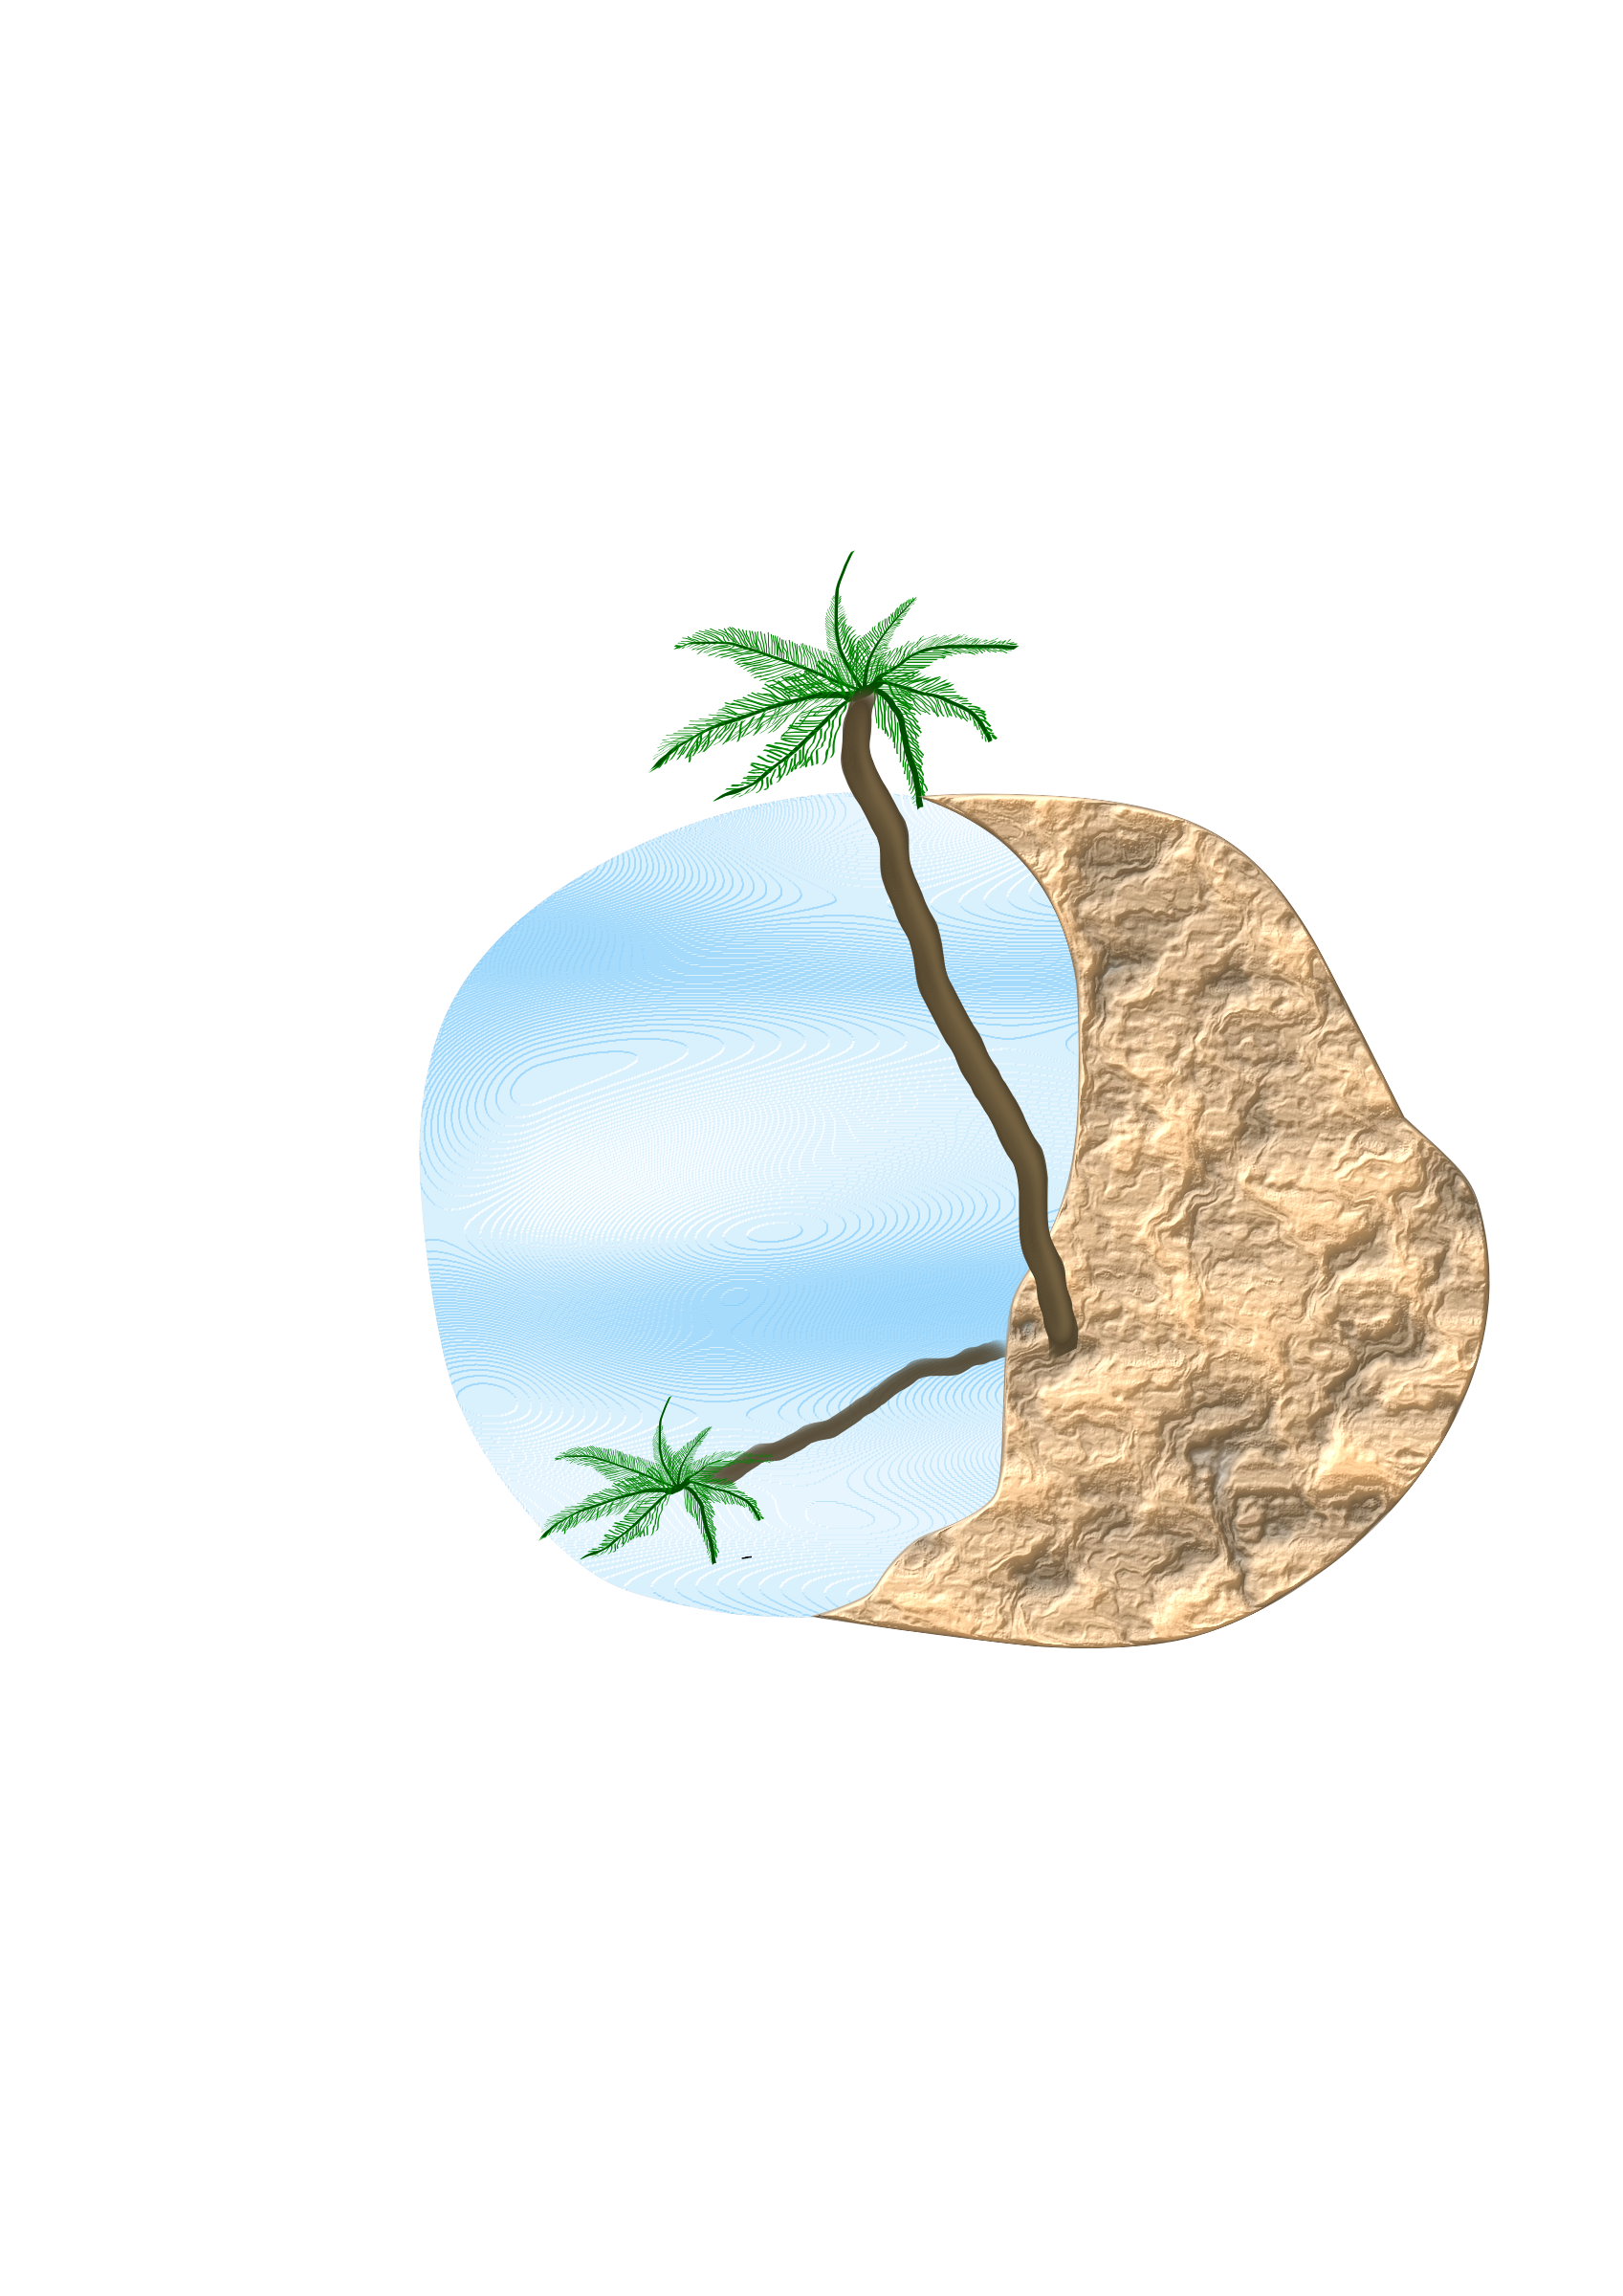 Palm clipart circle, Palm circle Transparent FREE for ...